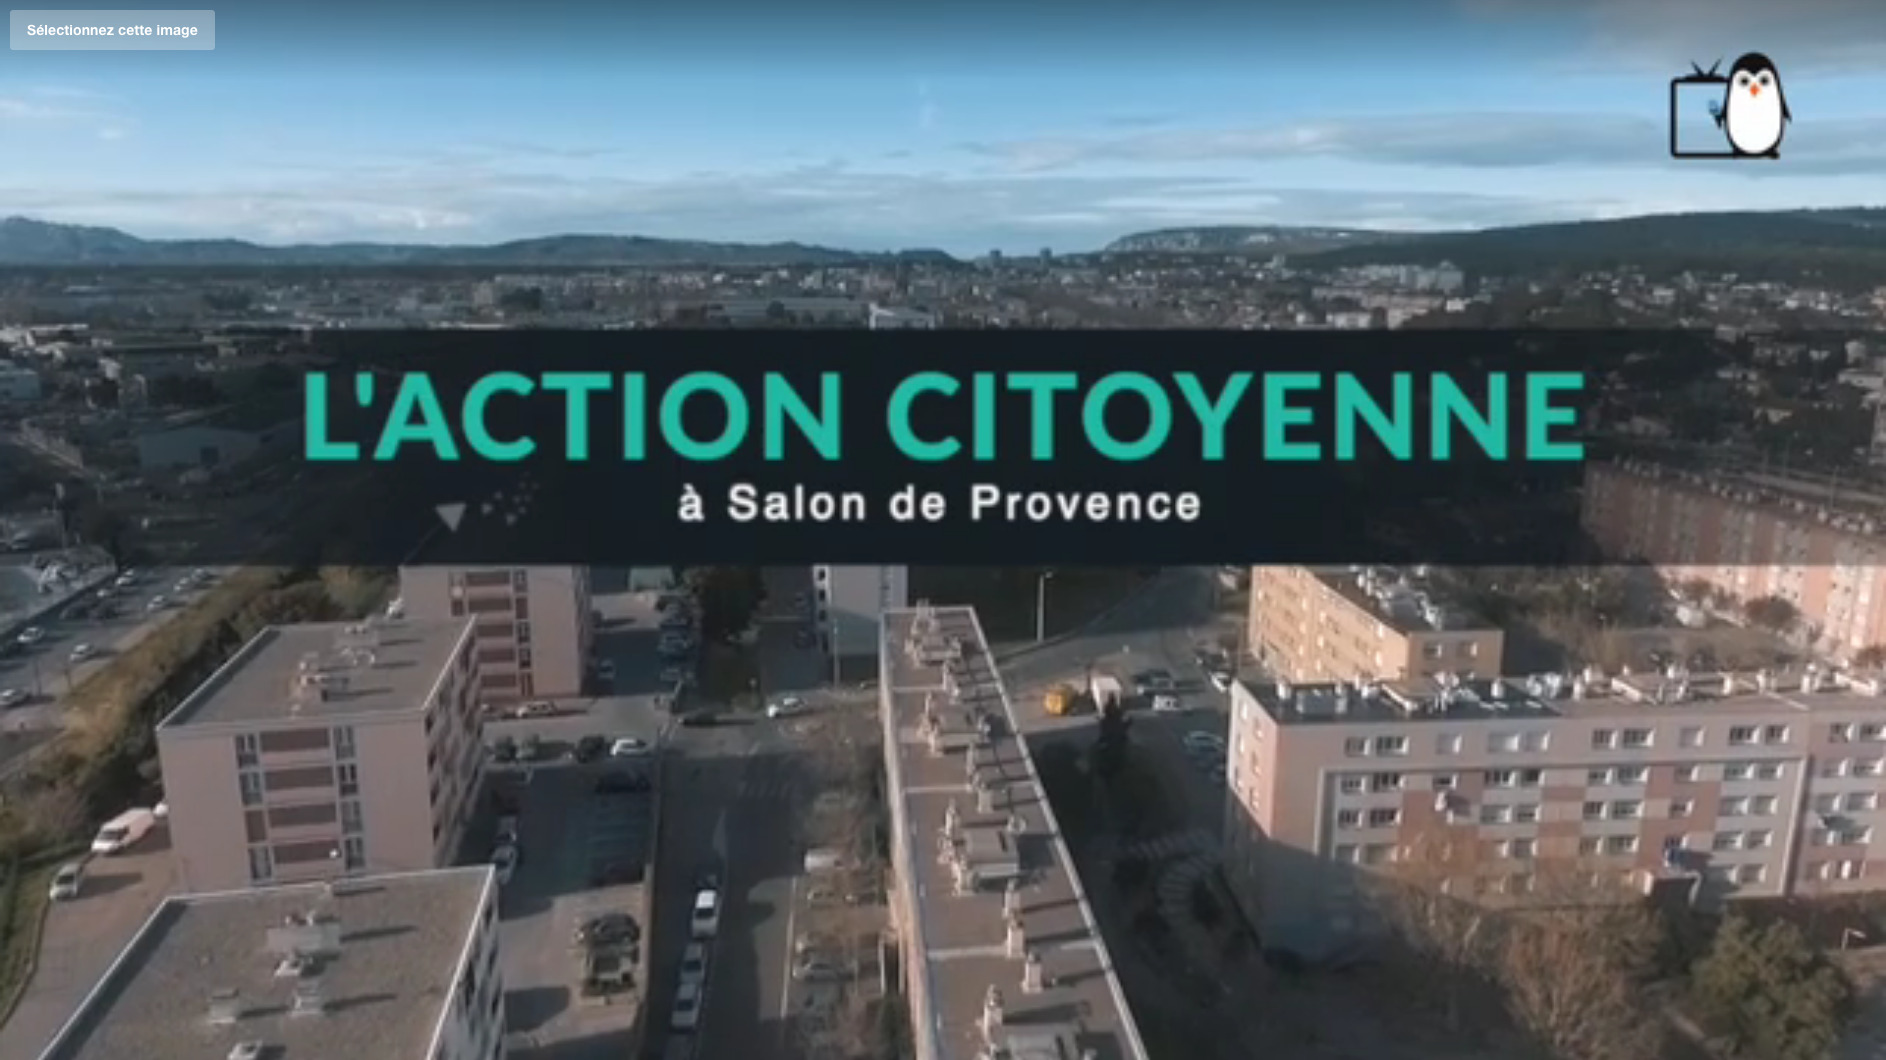 L'action citoyenne 1